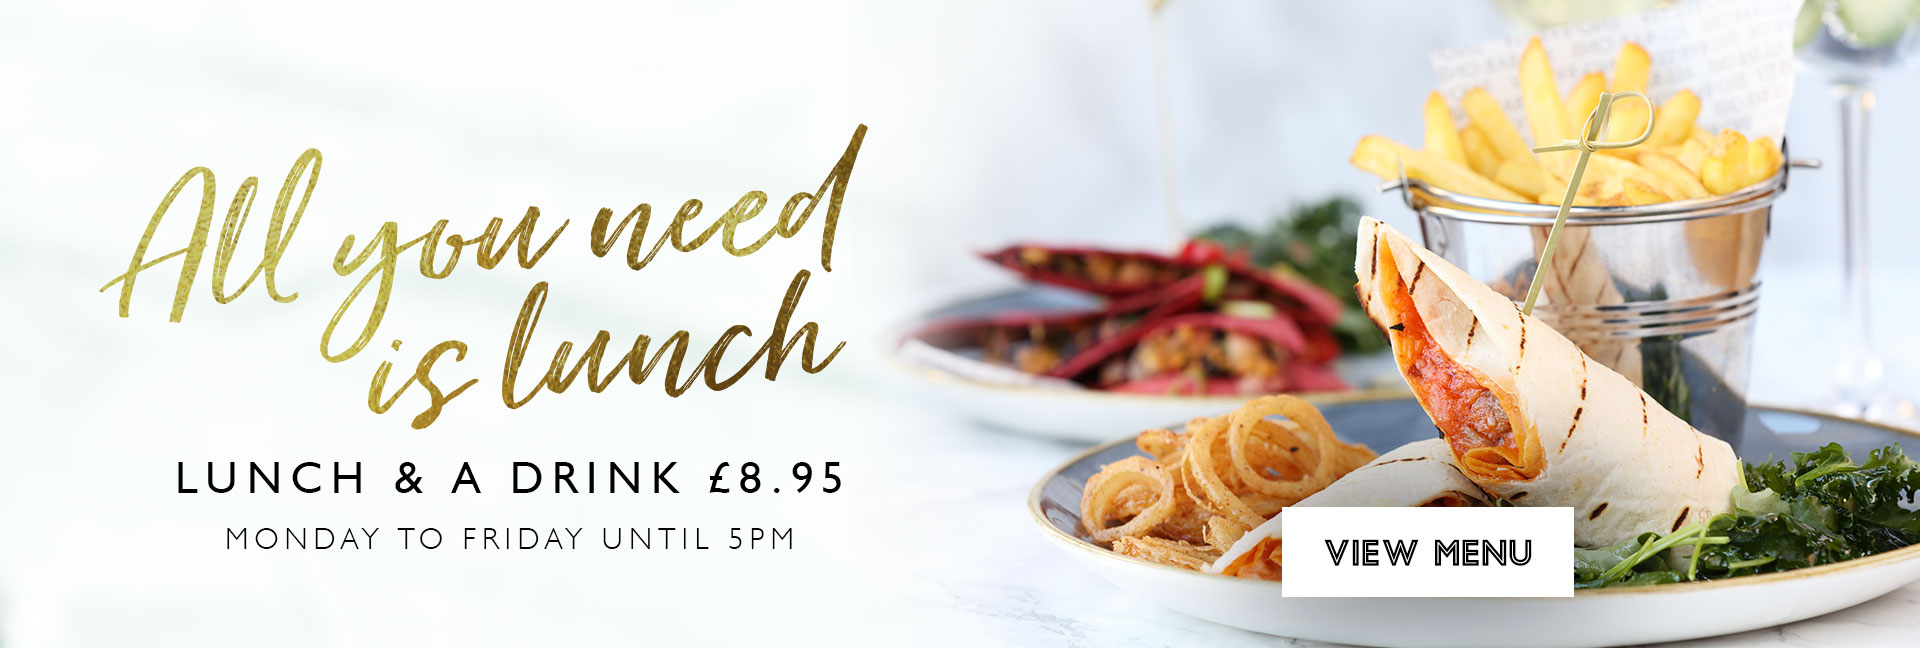 Lunch Offer at All Bar One Guildford